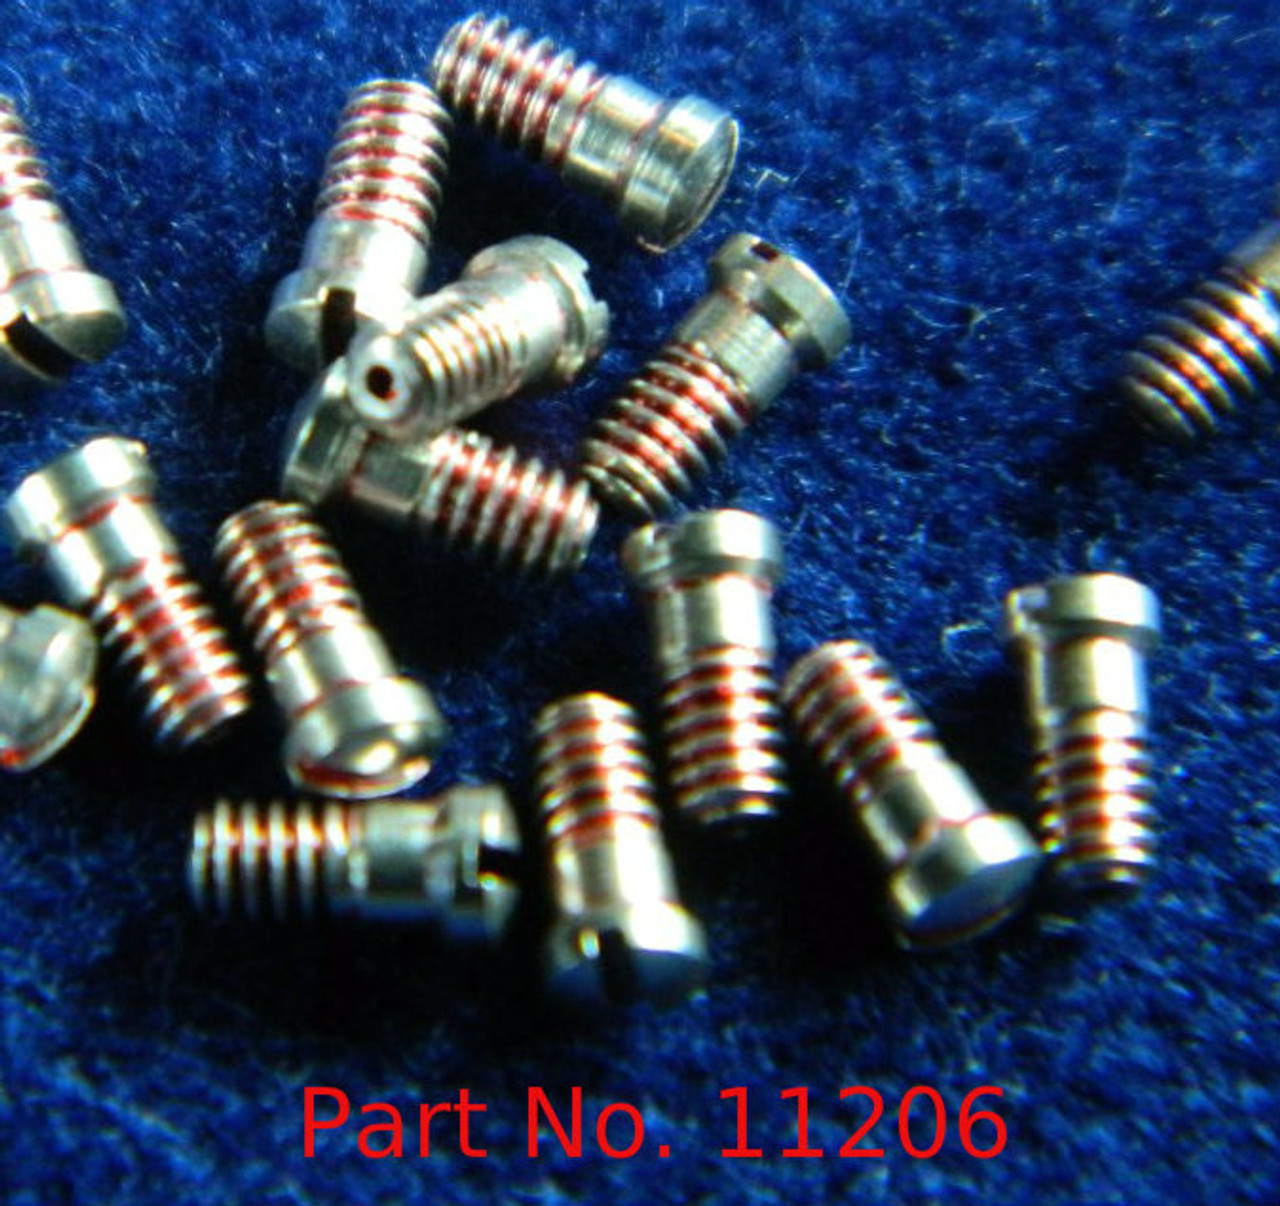 """Machine Screw Special, Small Head, Thread M1.4 (140UNM) Pitch .30mm Head Diameter 2.0mm Length (Shank) 2.8mm / 0.110"""" Max Overall Length (OAL) 3.0mm Material Stainless Steel, Finish Color """"Silver"""" Made on precision screw machines."""